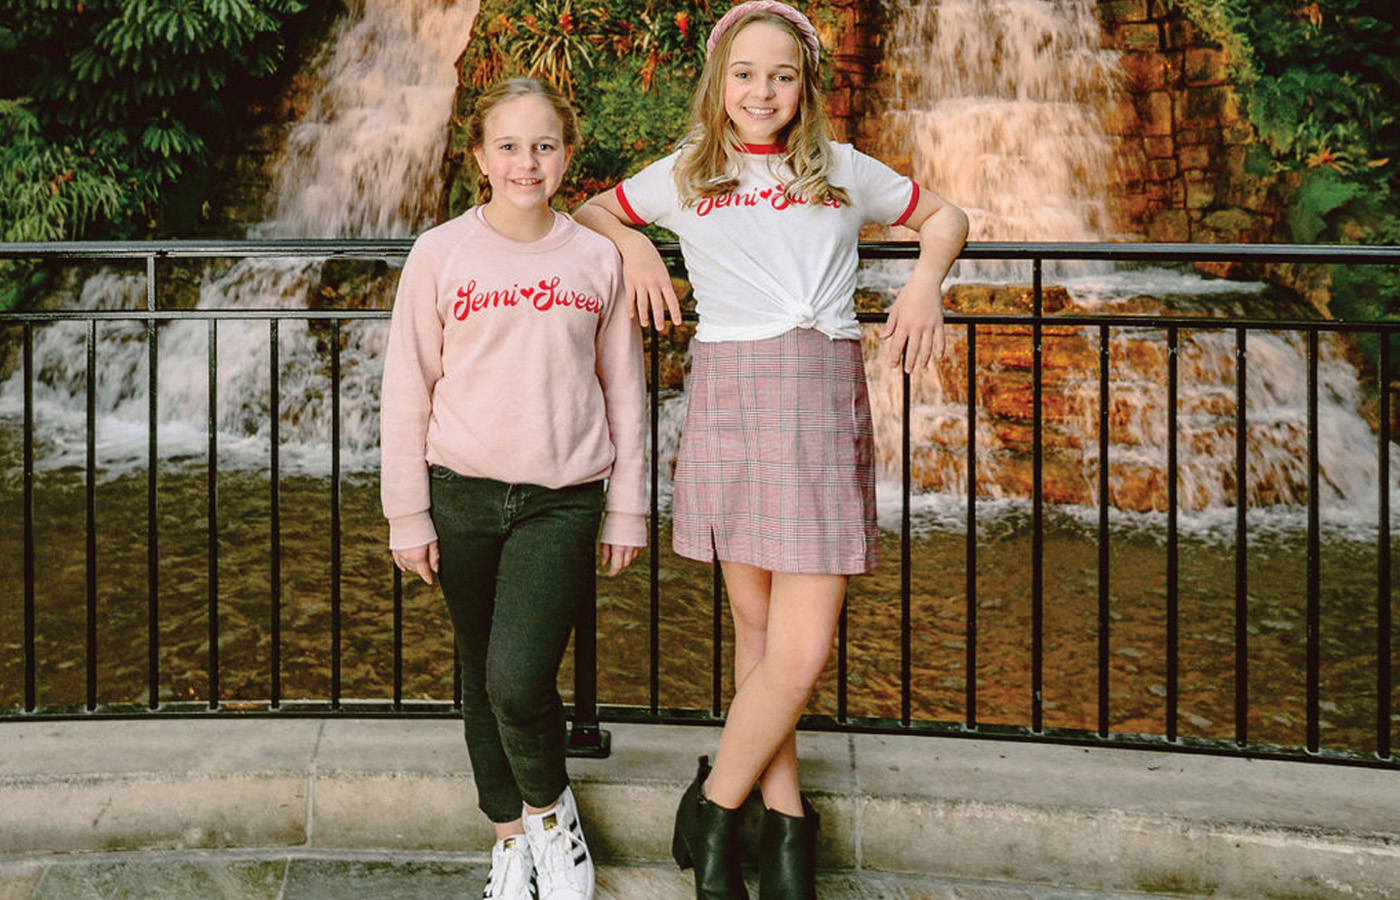 Witherspoon Sisters Launch New Line to Inspire Girls